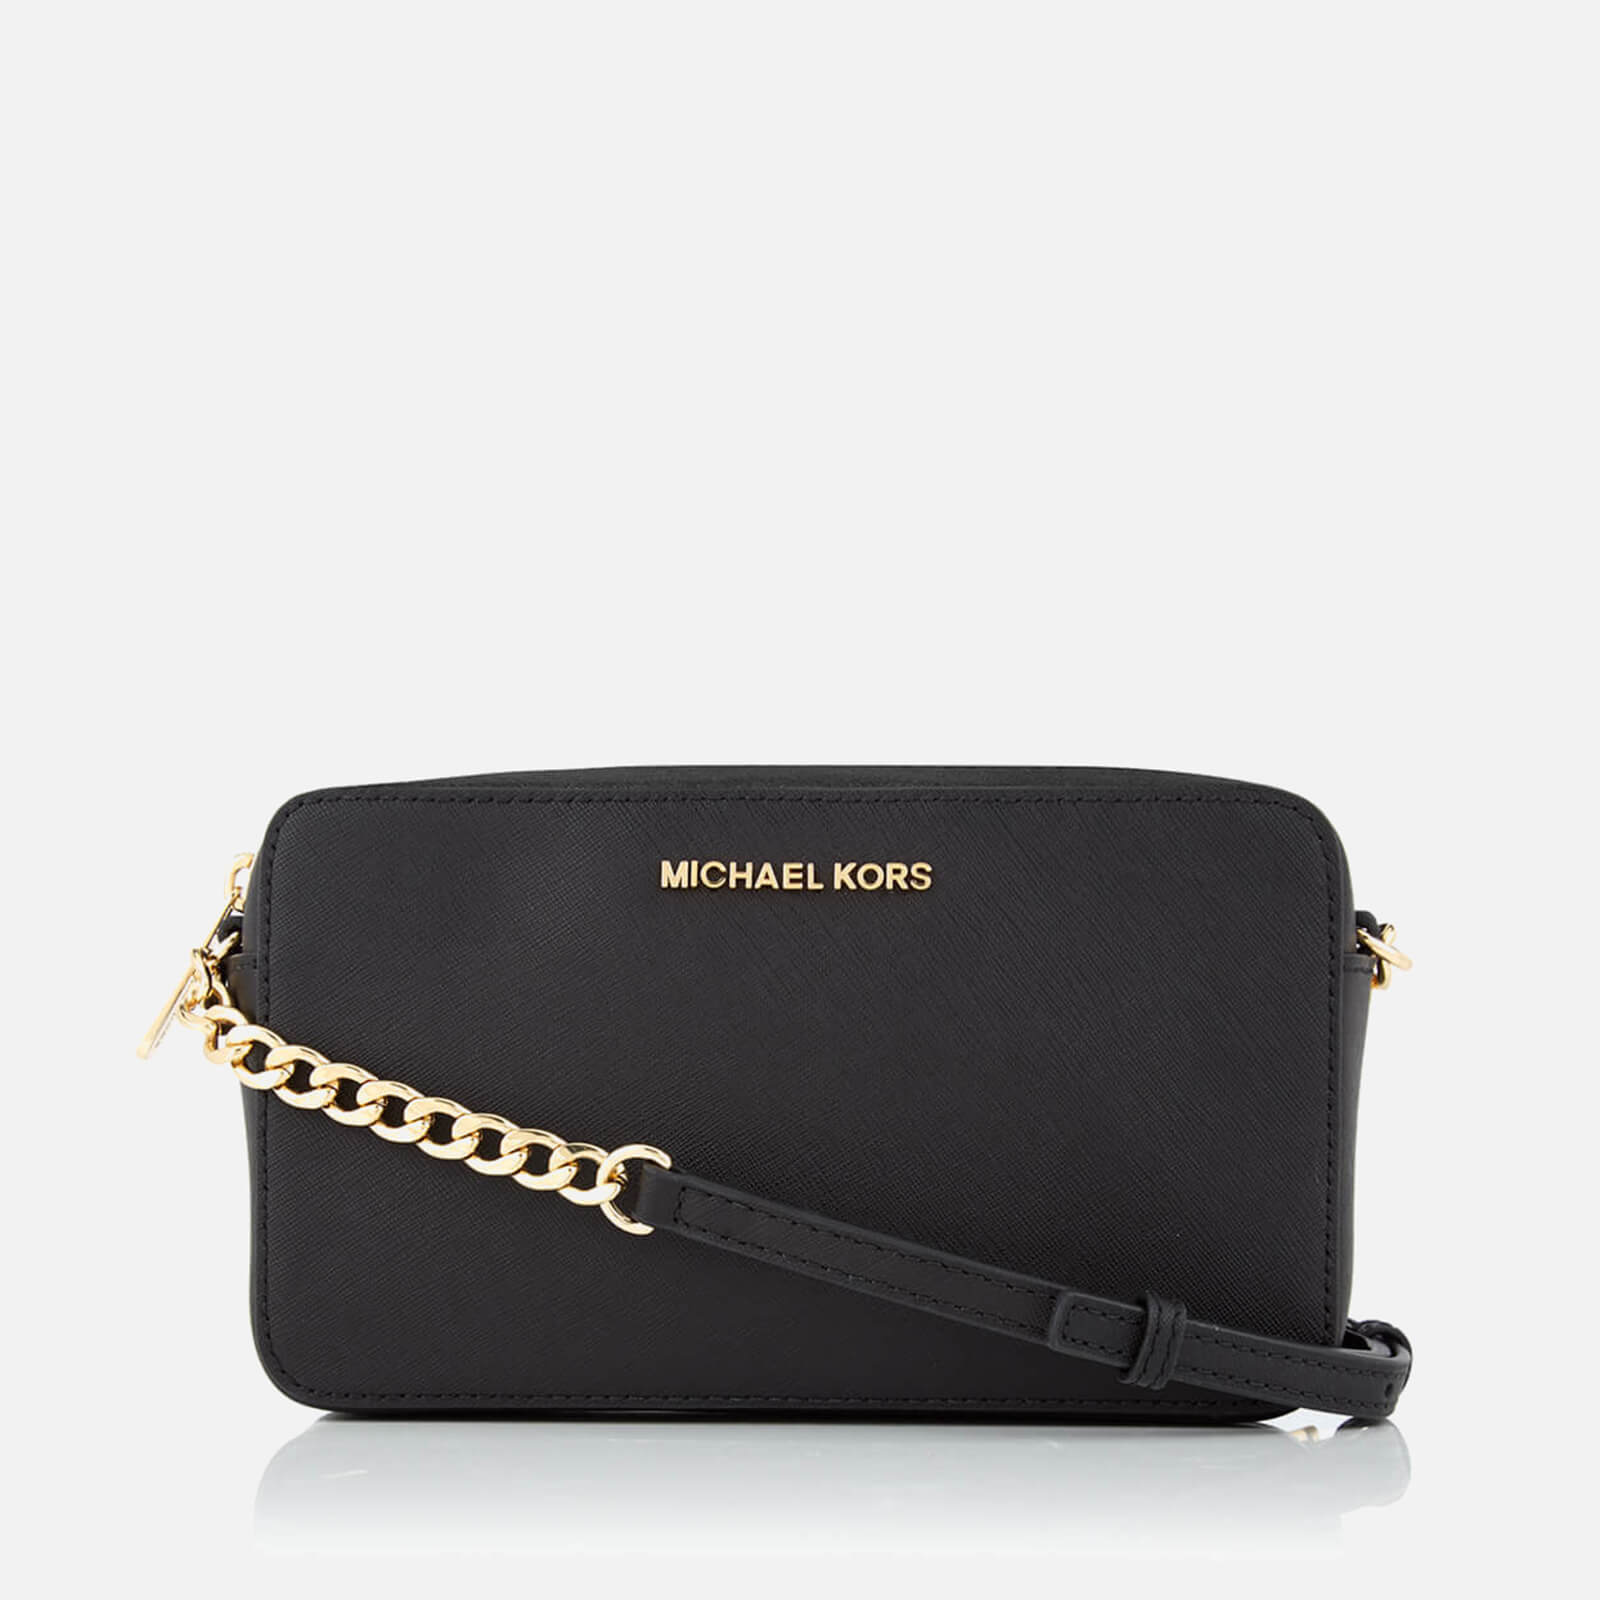 69a2245d0084 MICHAEL MICHAEL KORS Women s Jet Set Travel Medium East West Cross Body Bag  - Black - Free UK Delivery over £50